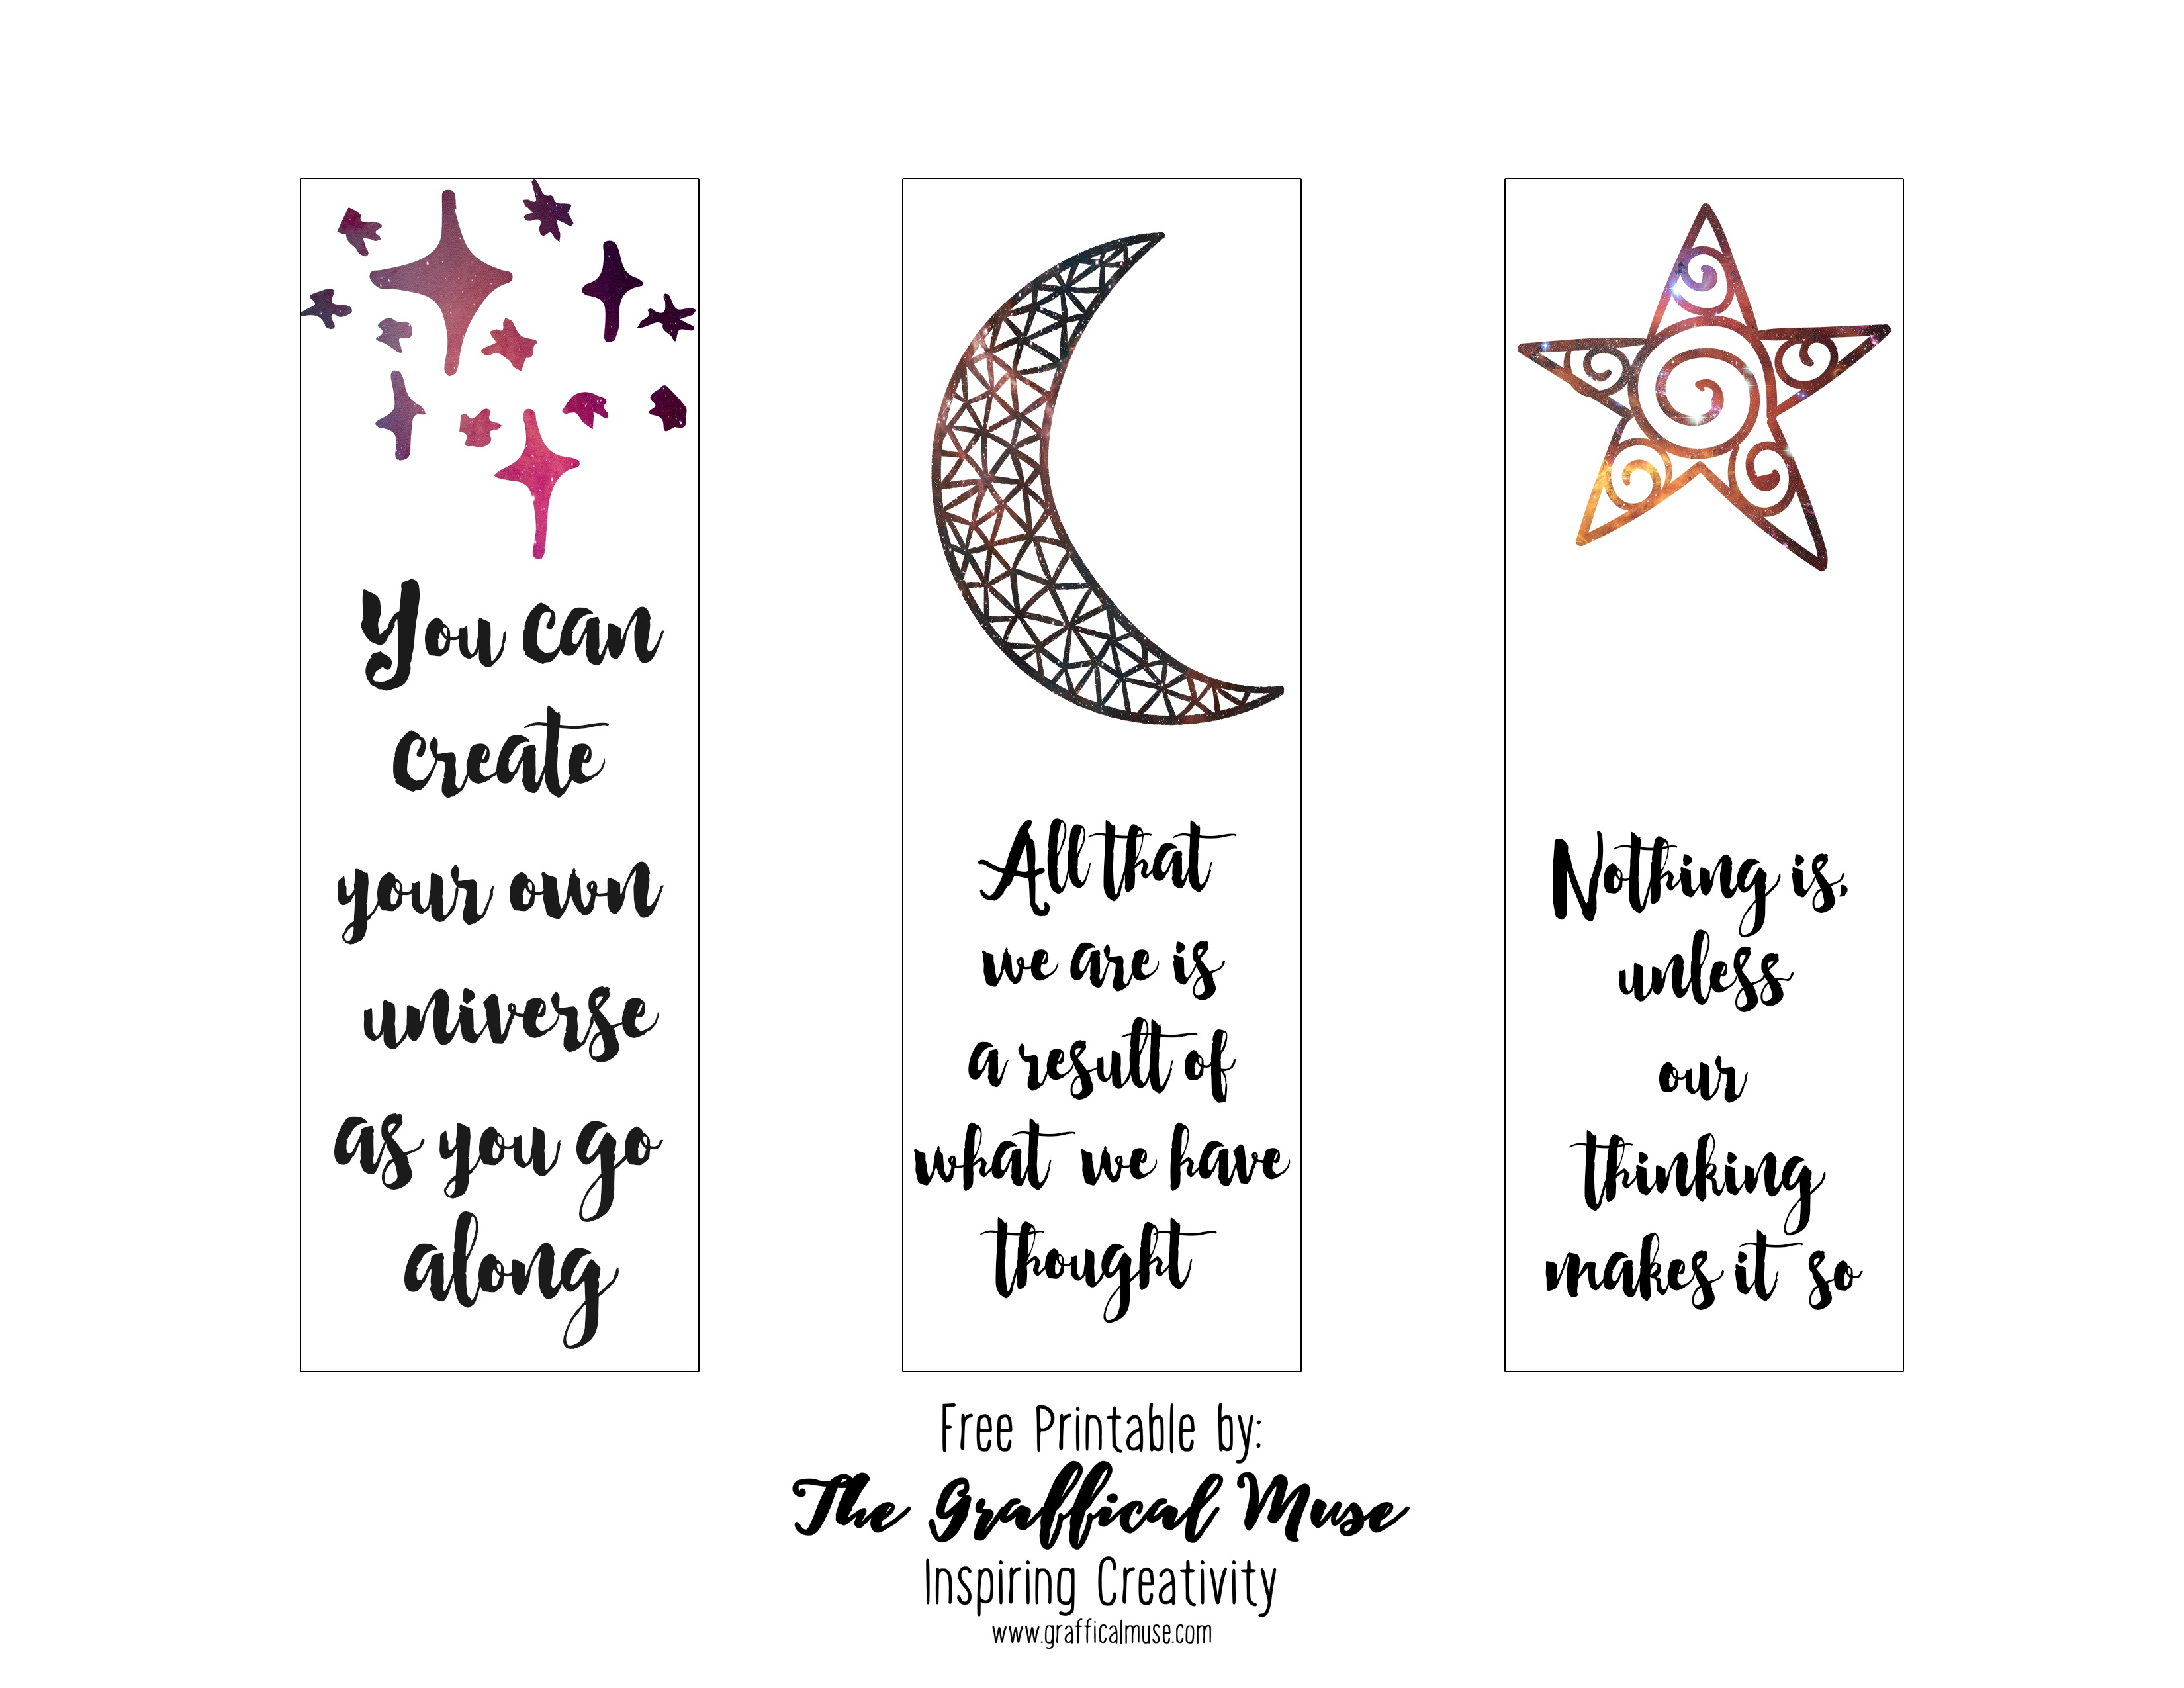 Free Printable Law Of Attraction Bookmarks - The Graffical Muse - Free Printable Bookmarks Pdf